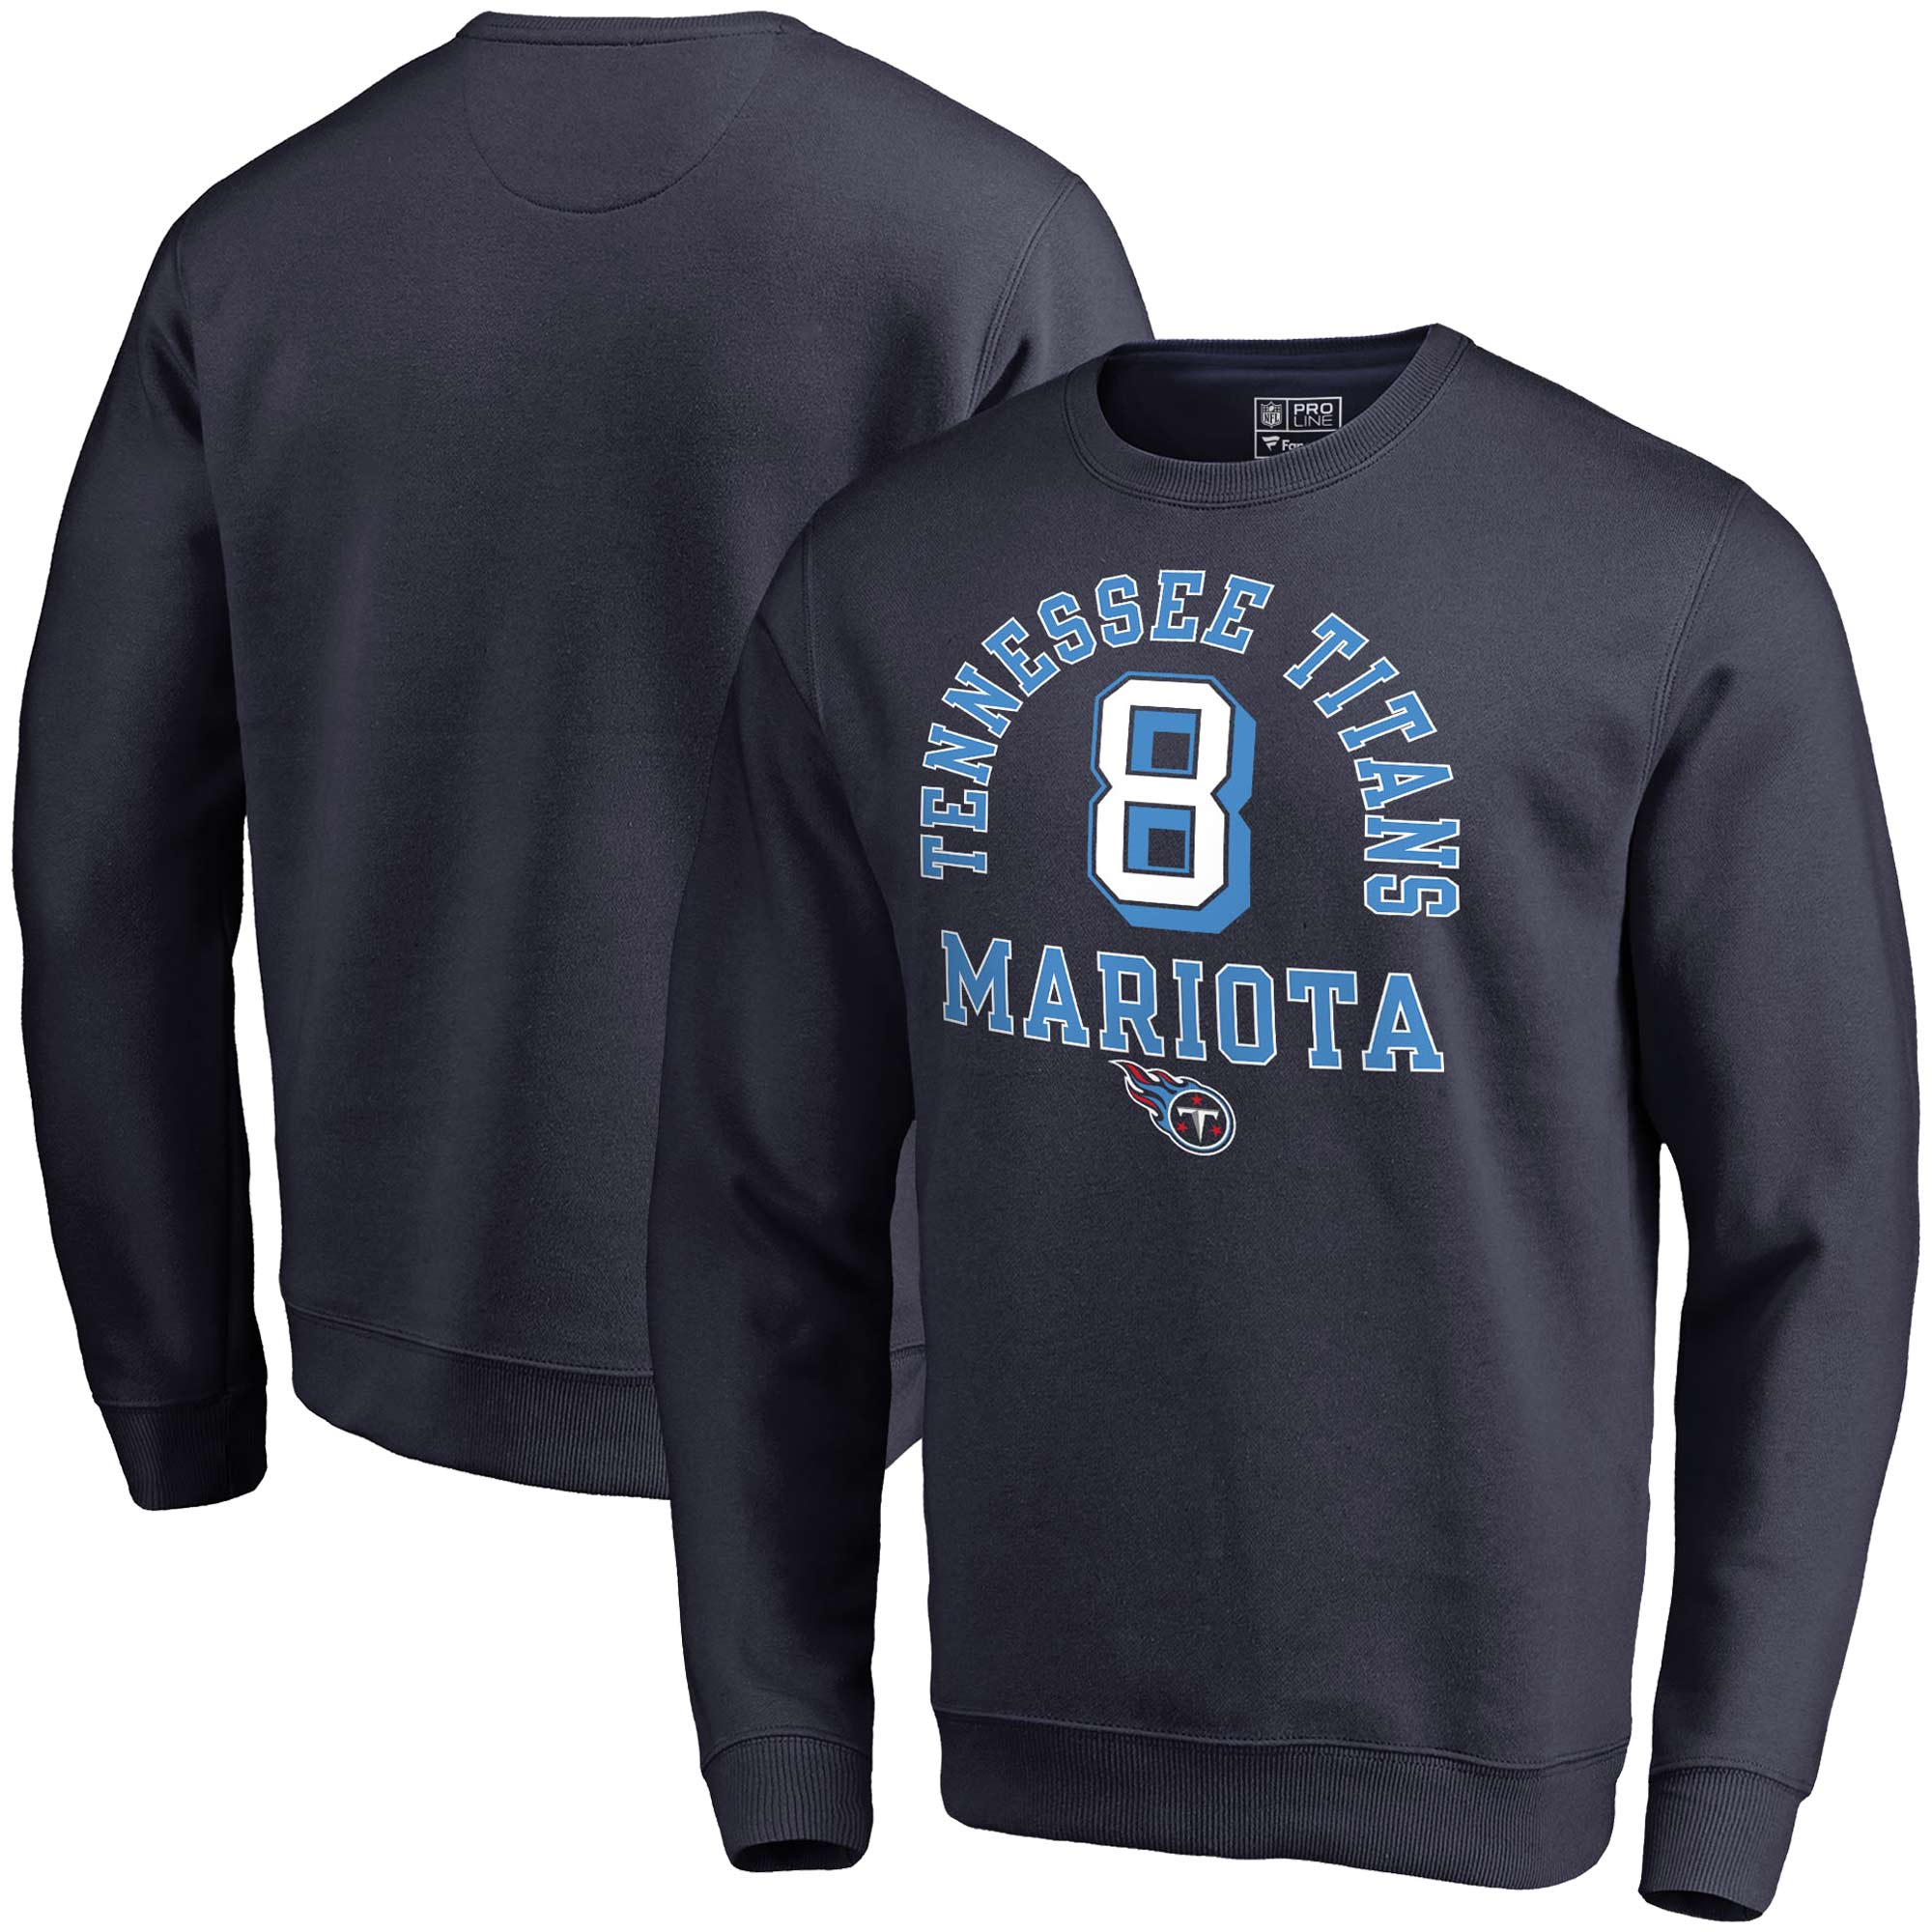 Marcus Mariota Tennessee Titans NFL Pro Line by Fanatics Branded Team Elite Player Name & Number Crew Pullover Sweatshirt - Navy